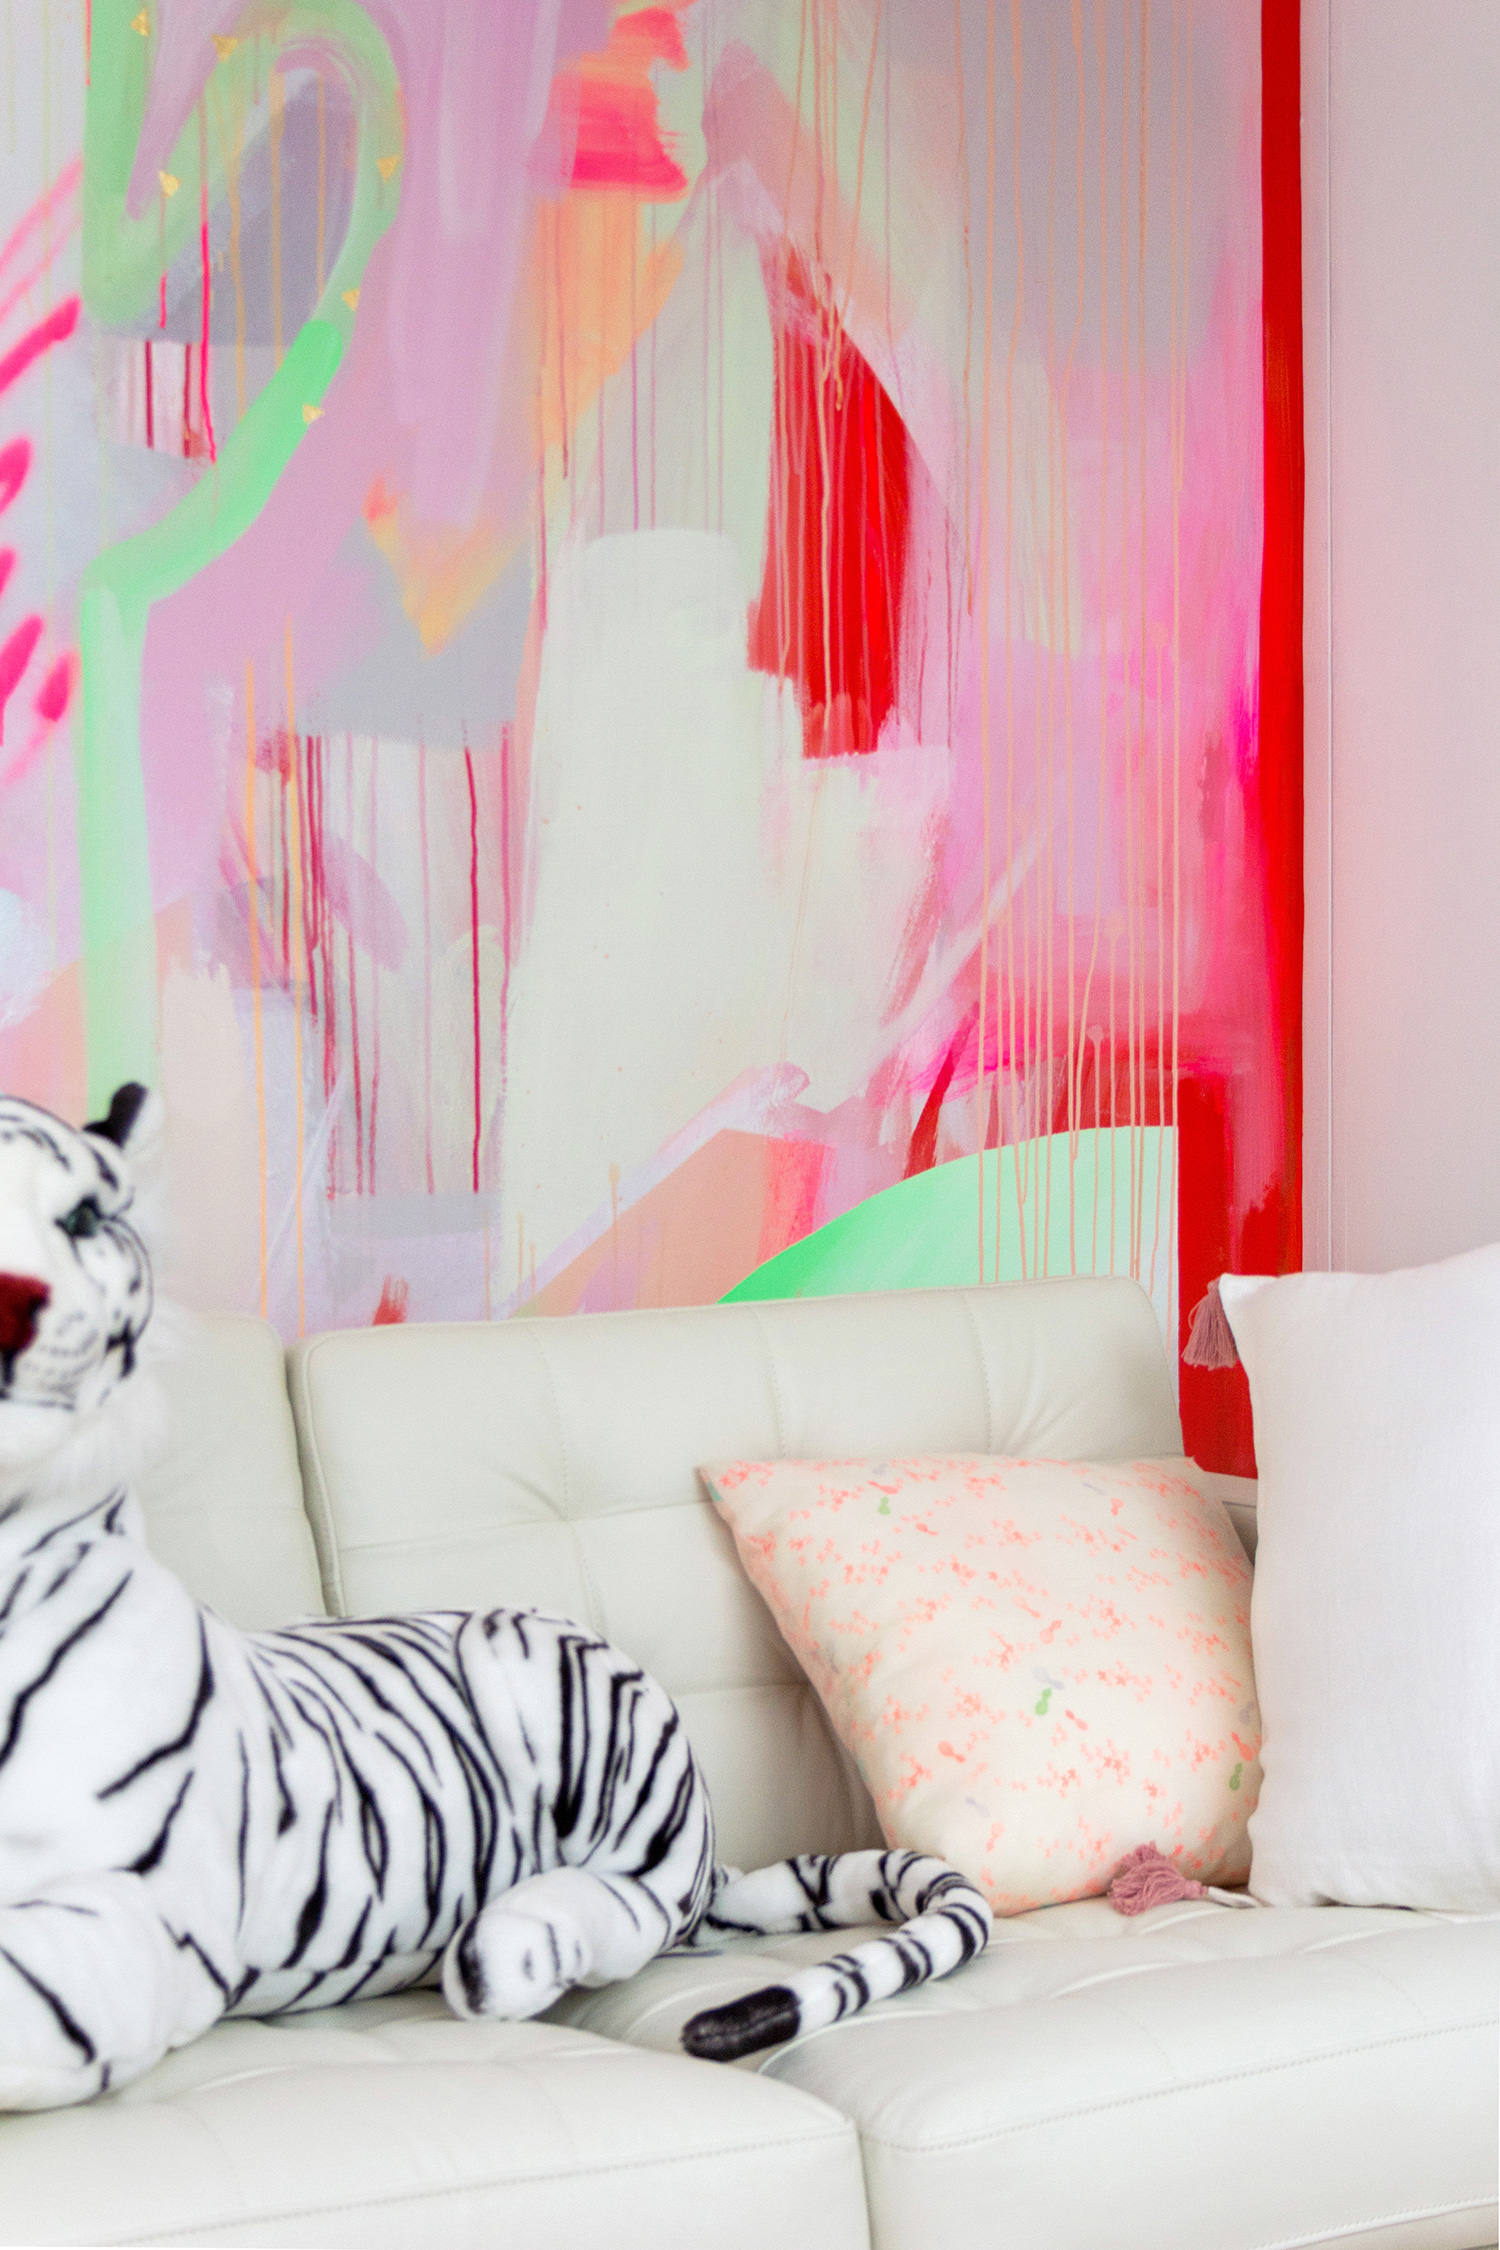 Vibrant wall mural in bright neon colours, features a spray painted cactus. Styled in front is a white leather couch and black and white toy tiger.